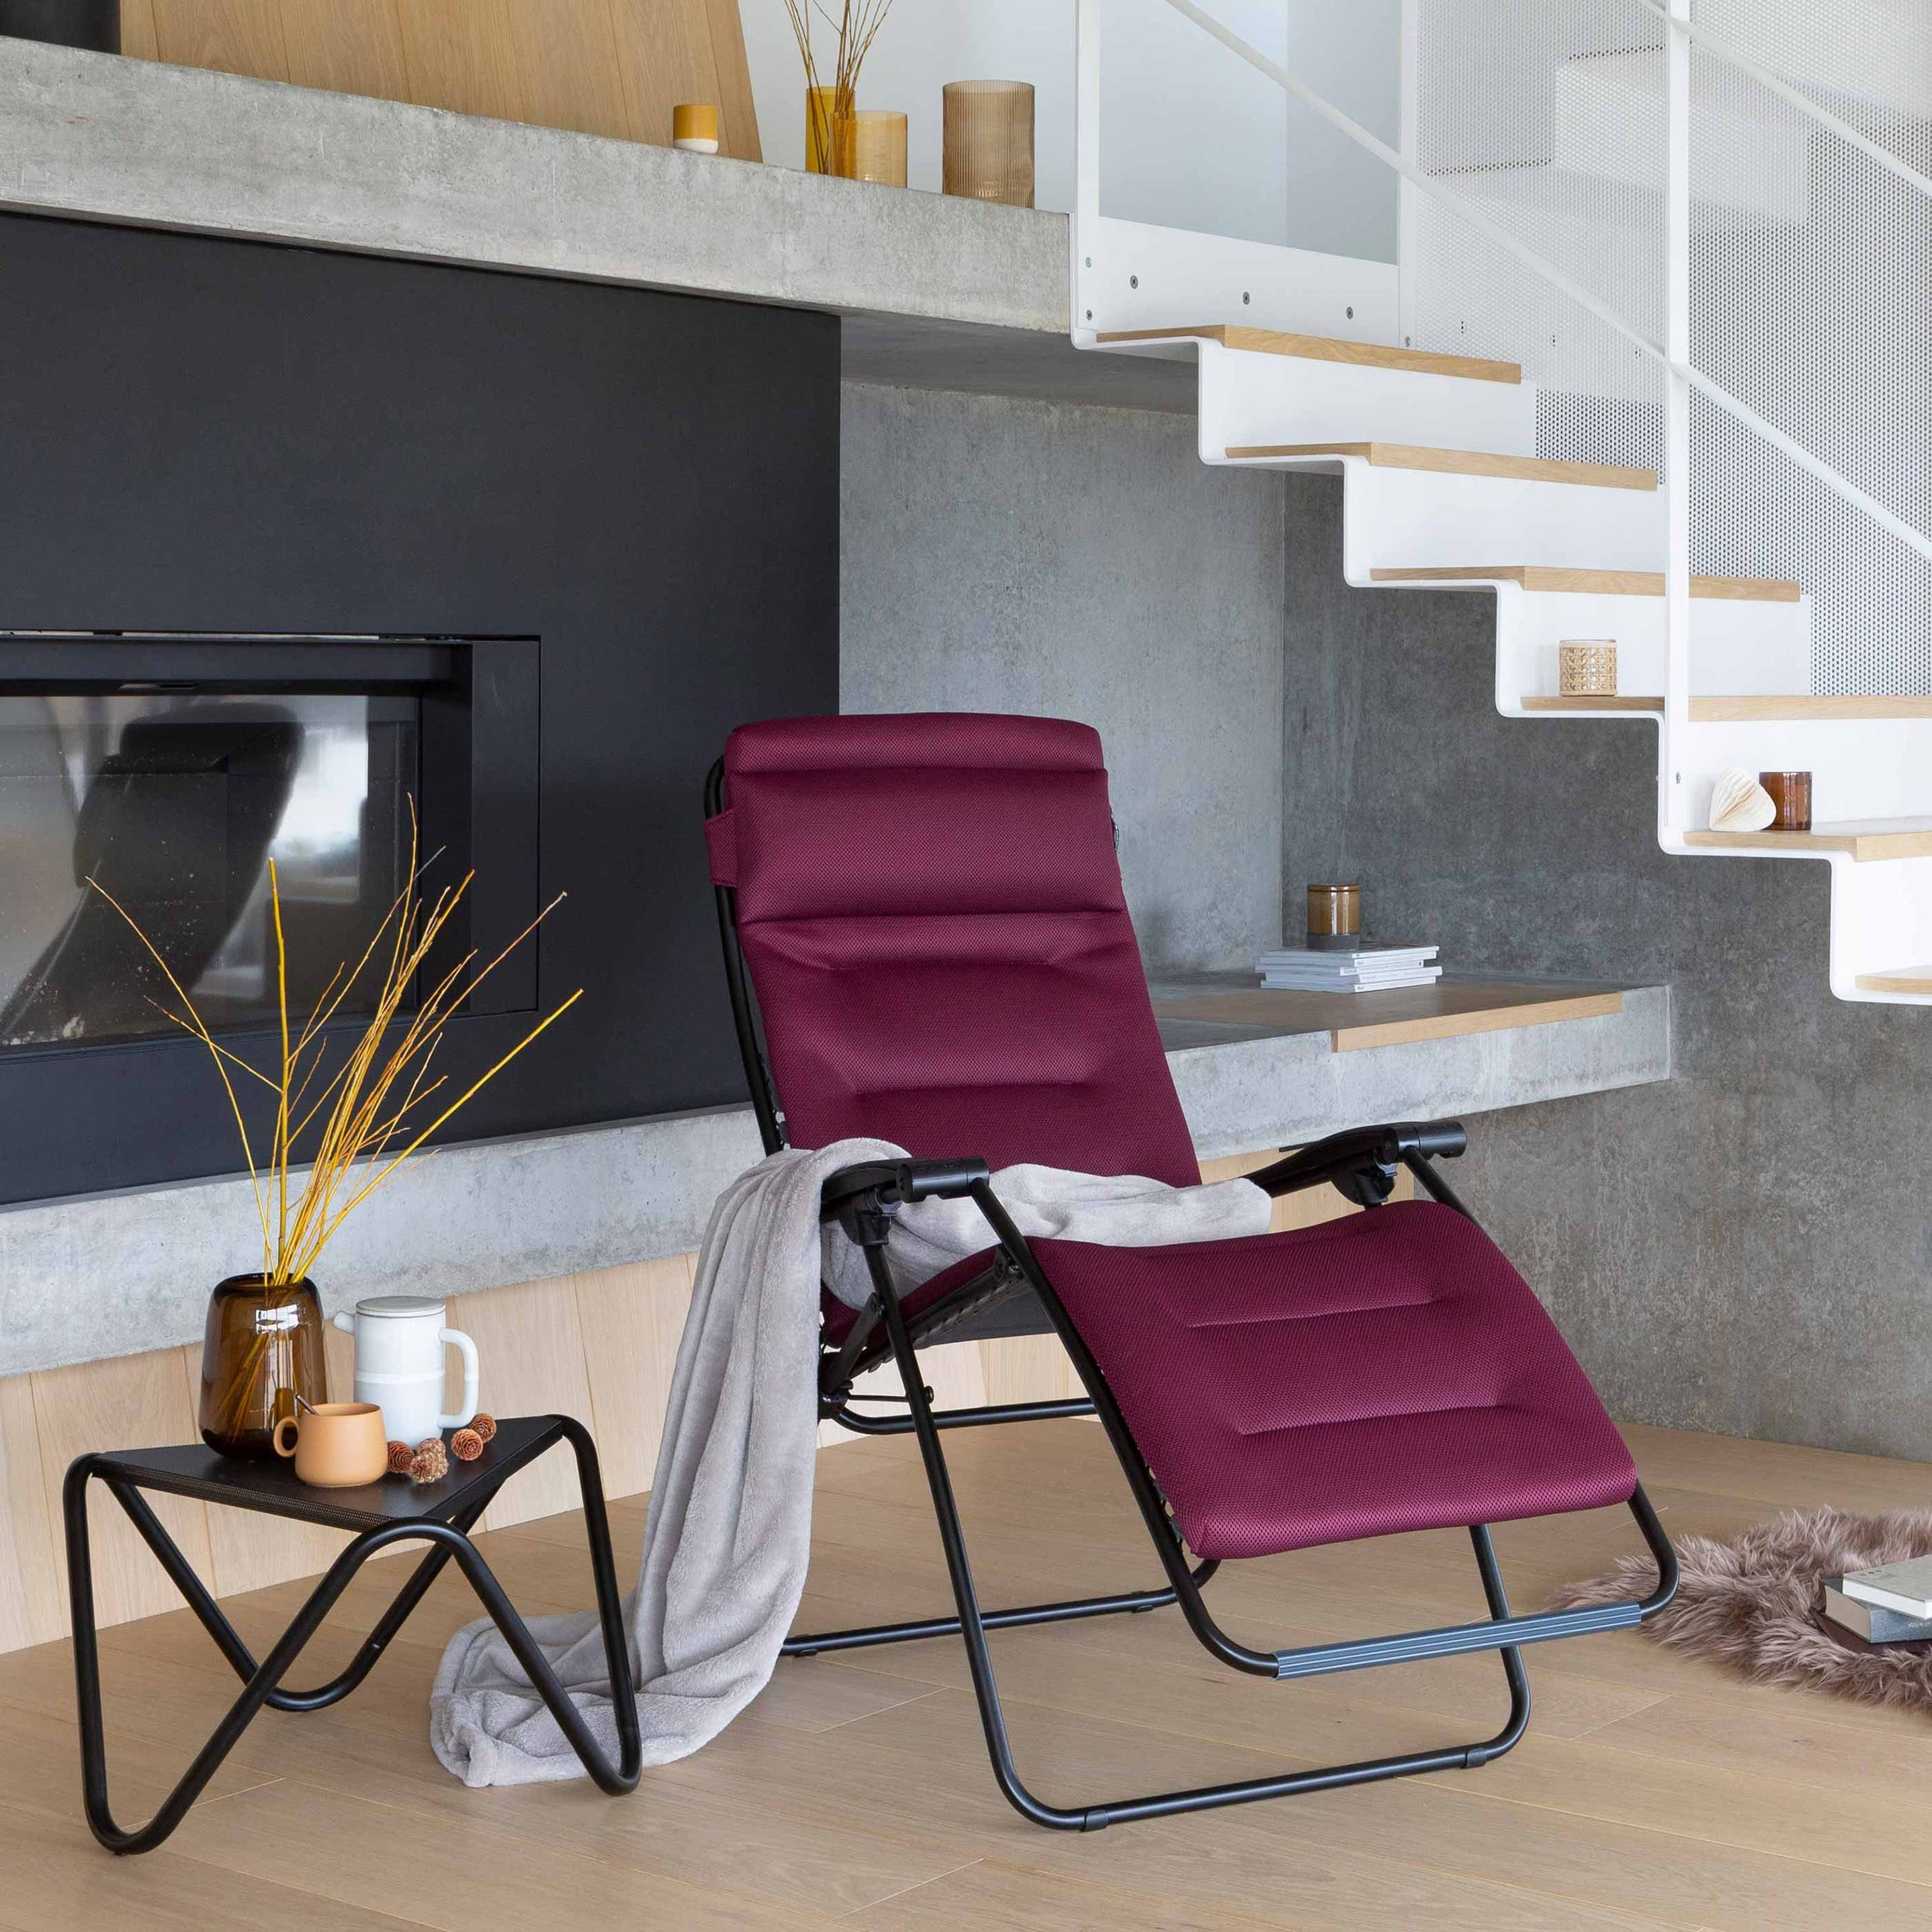 RELAXATION CHAIR Lafuma Mobilier 1